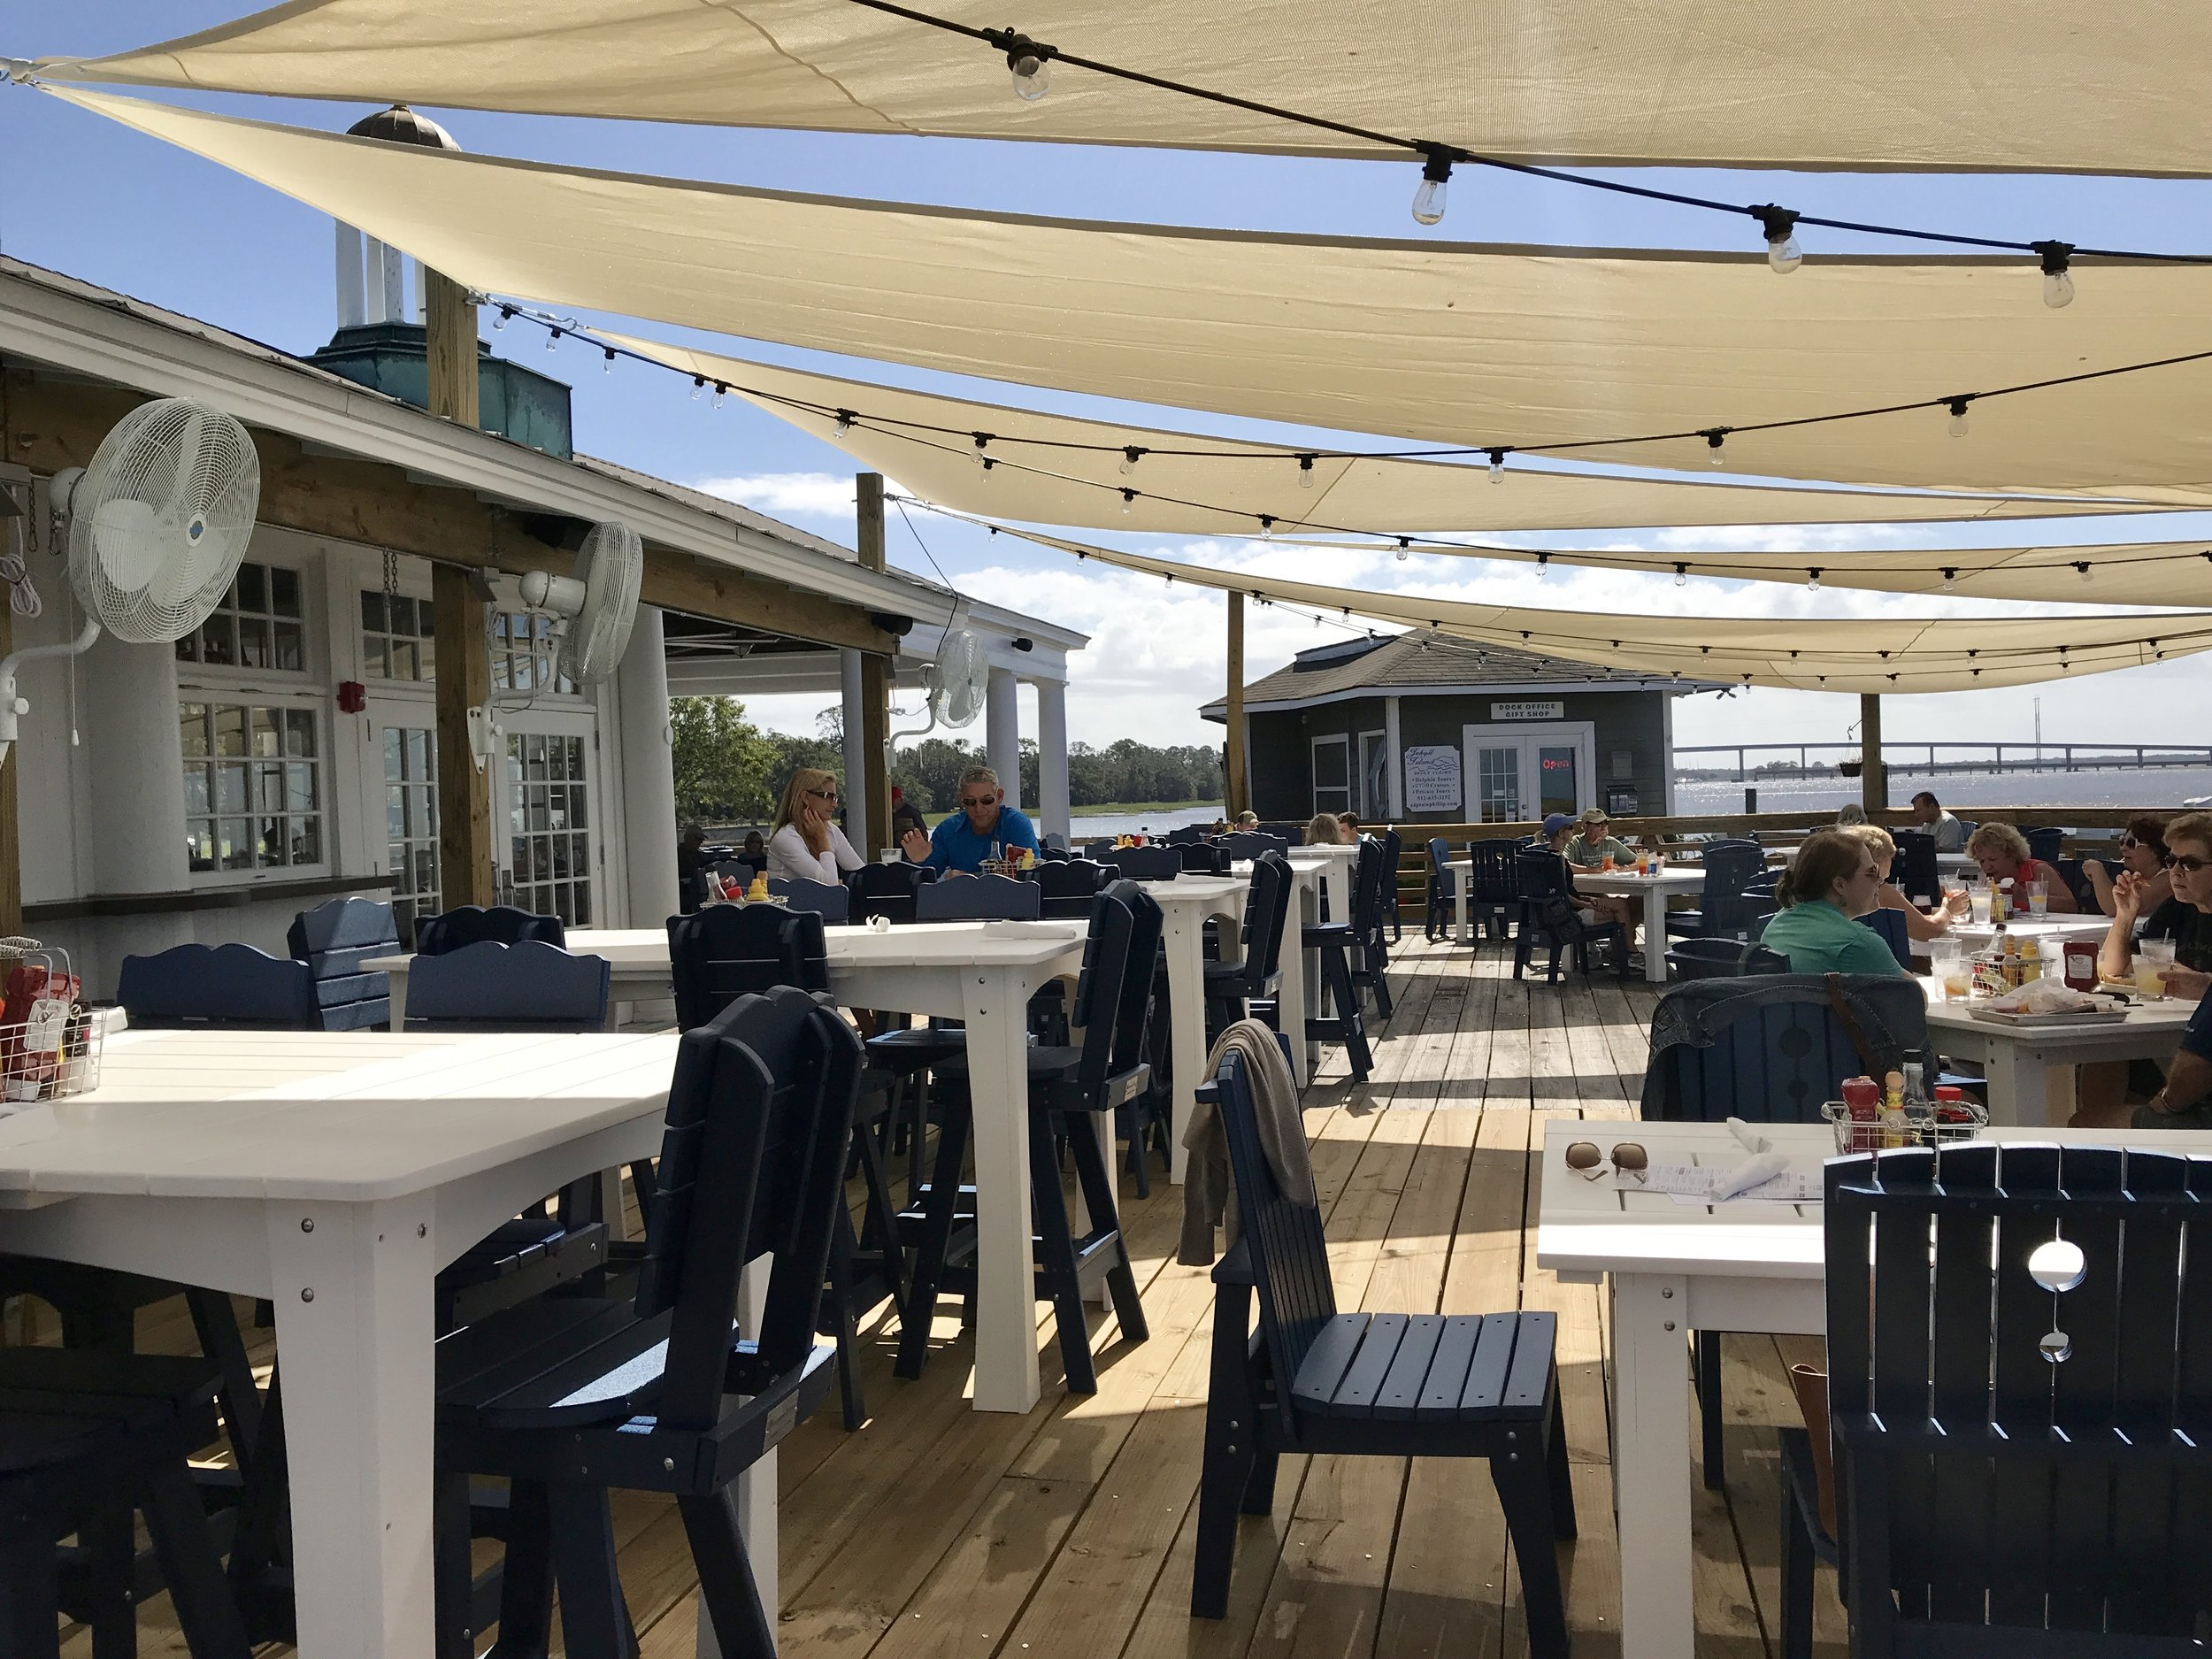 Outside dining area, The Wharf.